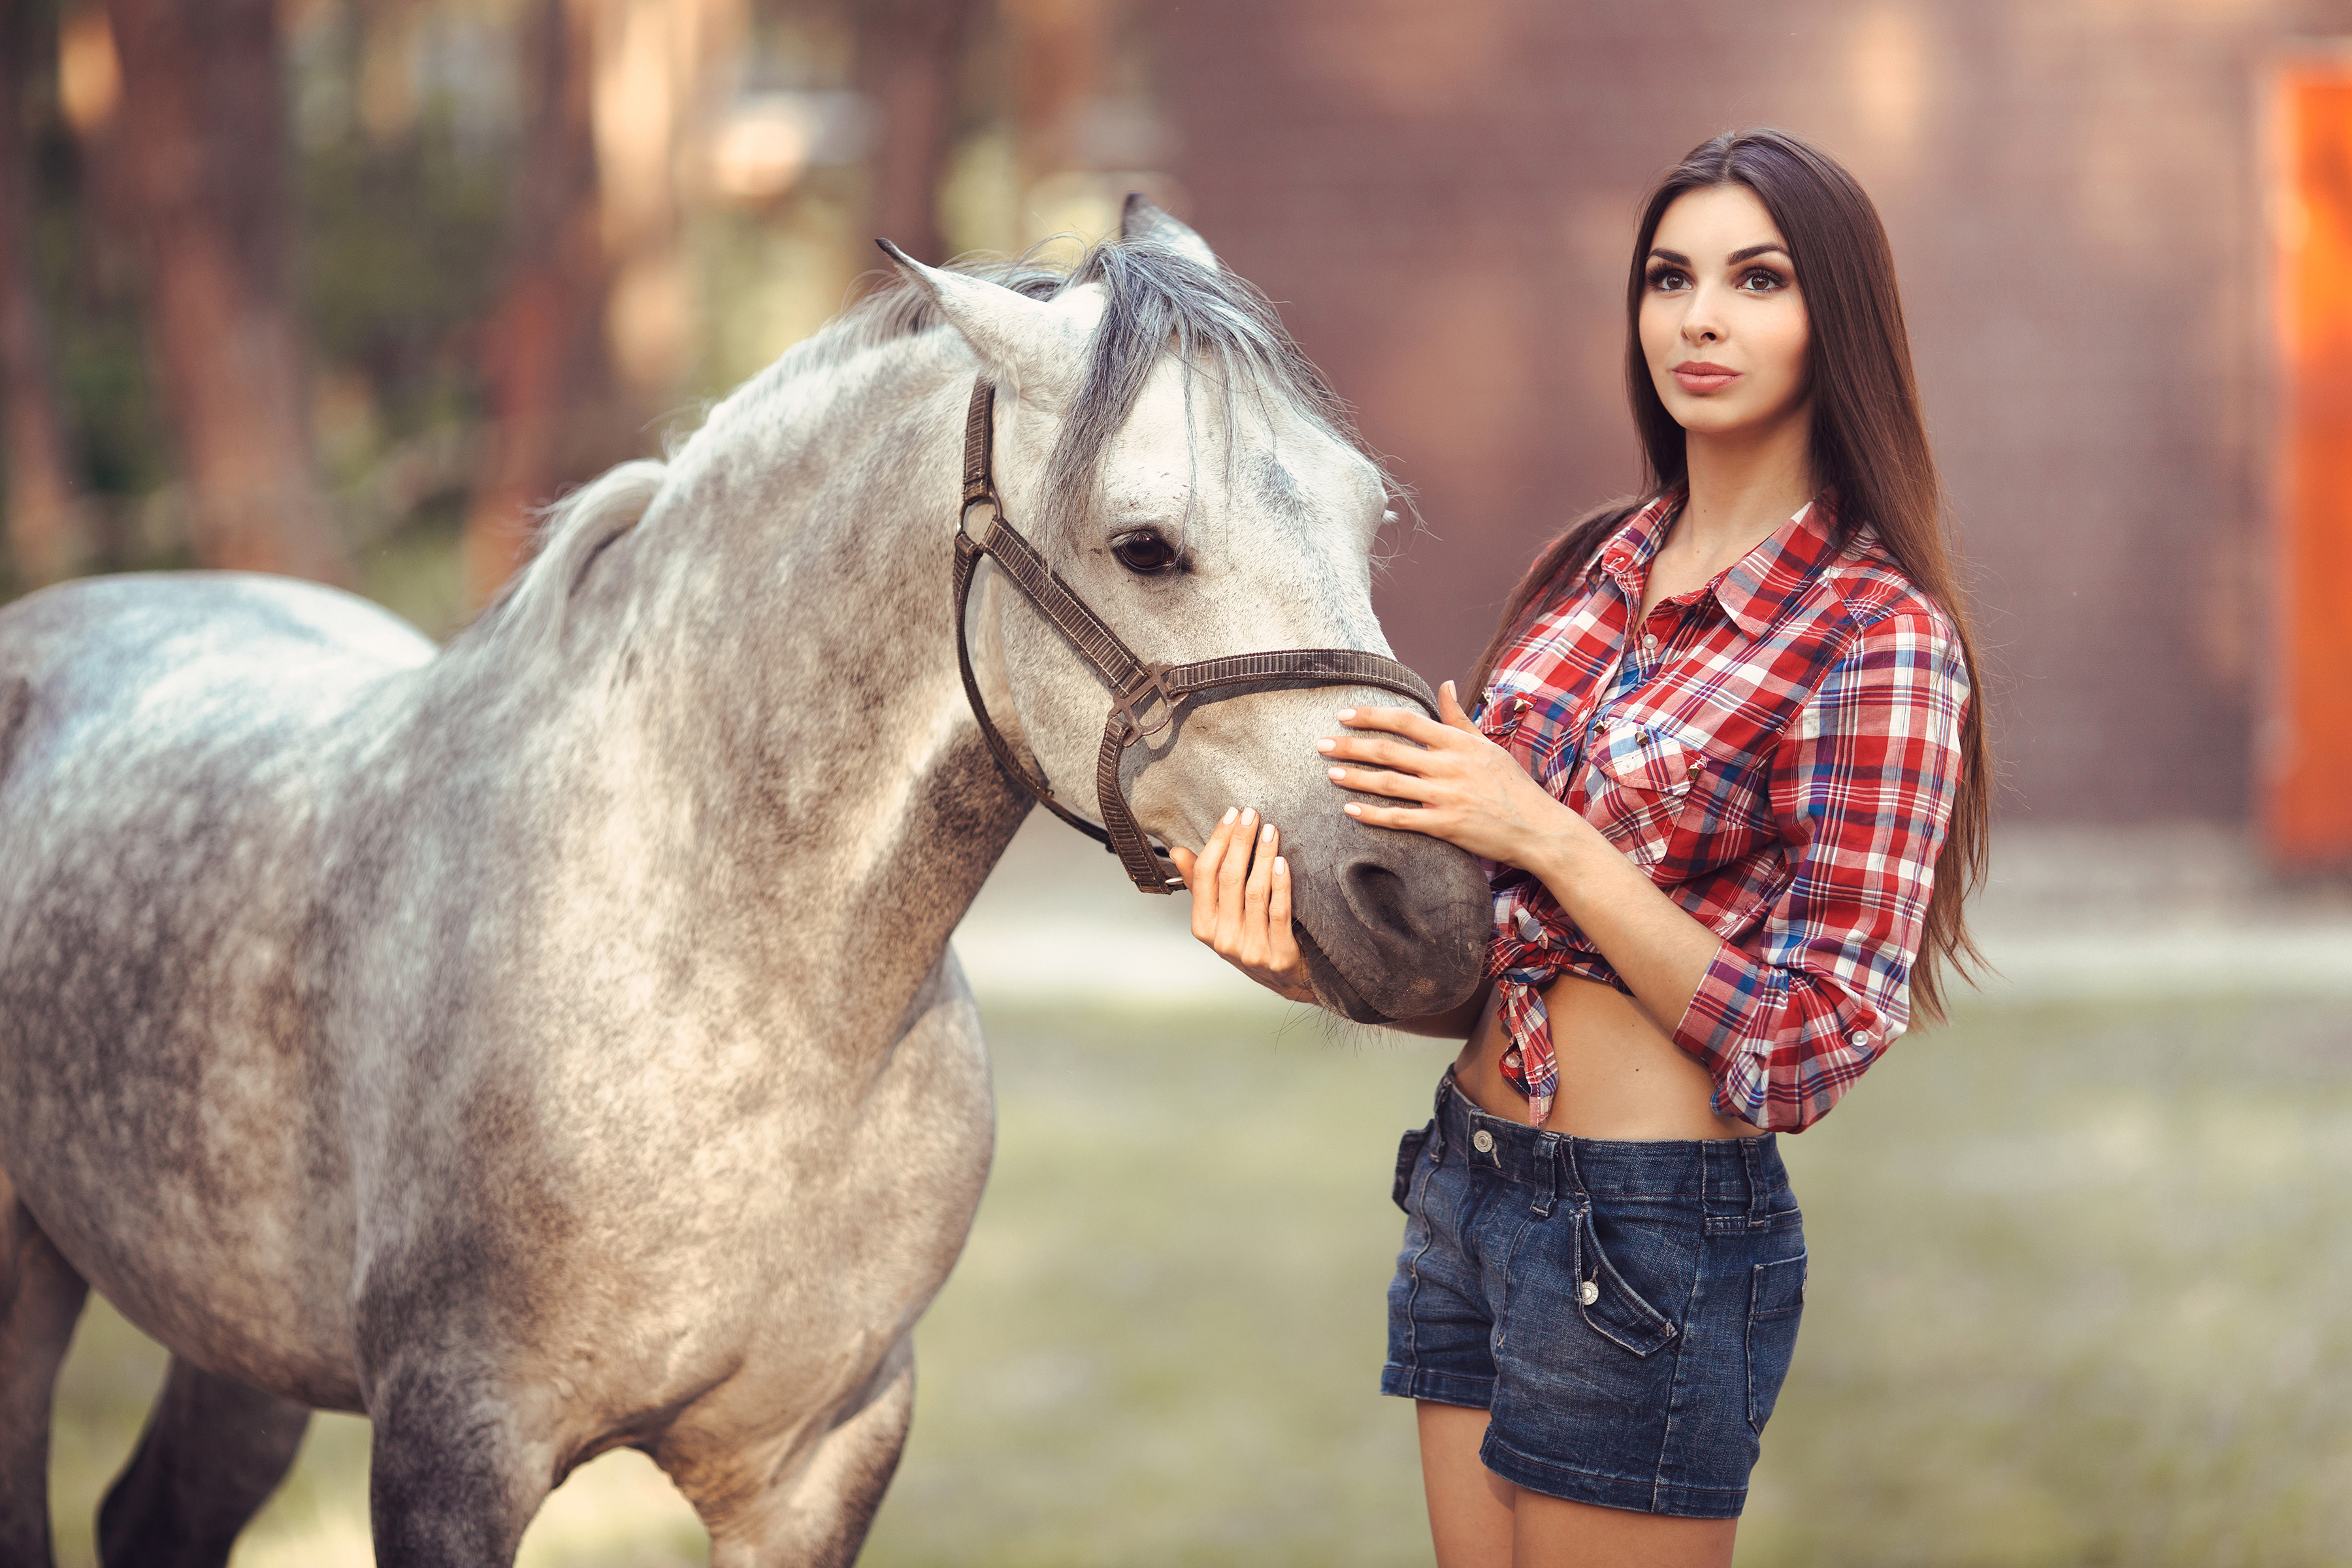 1366X768 Beautiful Girl With Horse 4K 1366X768 Resolution -2523